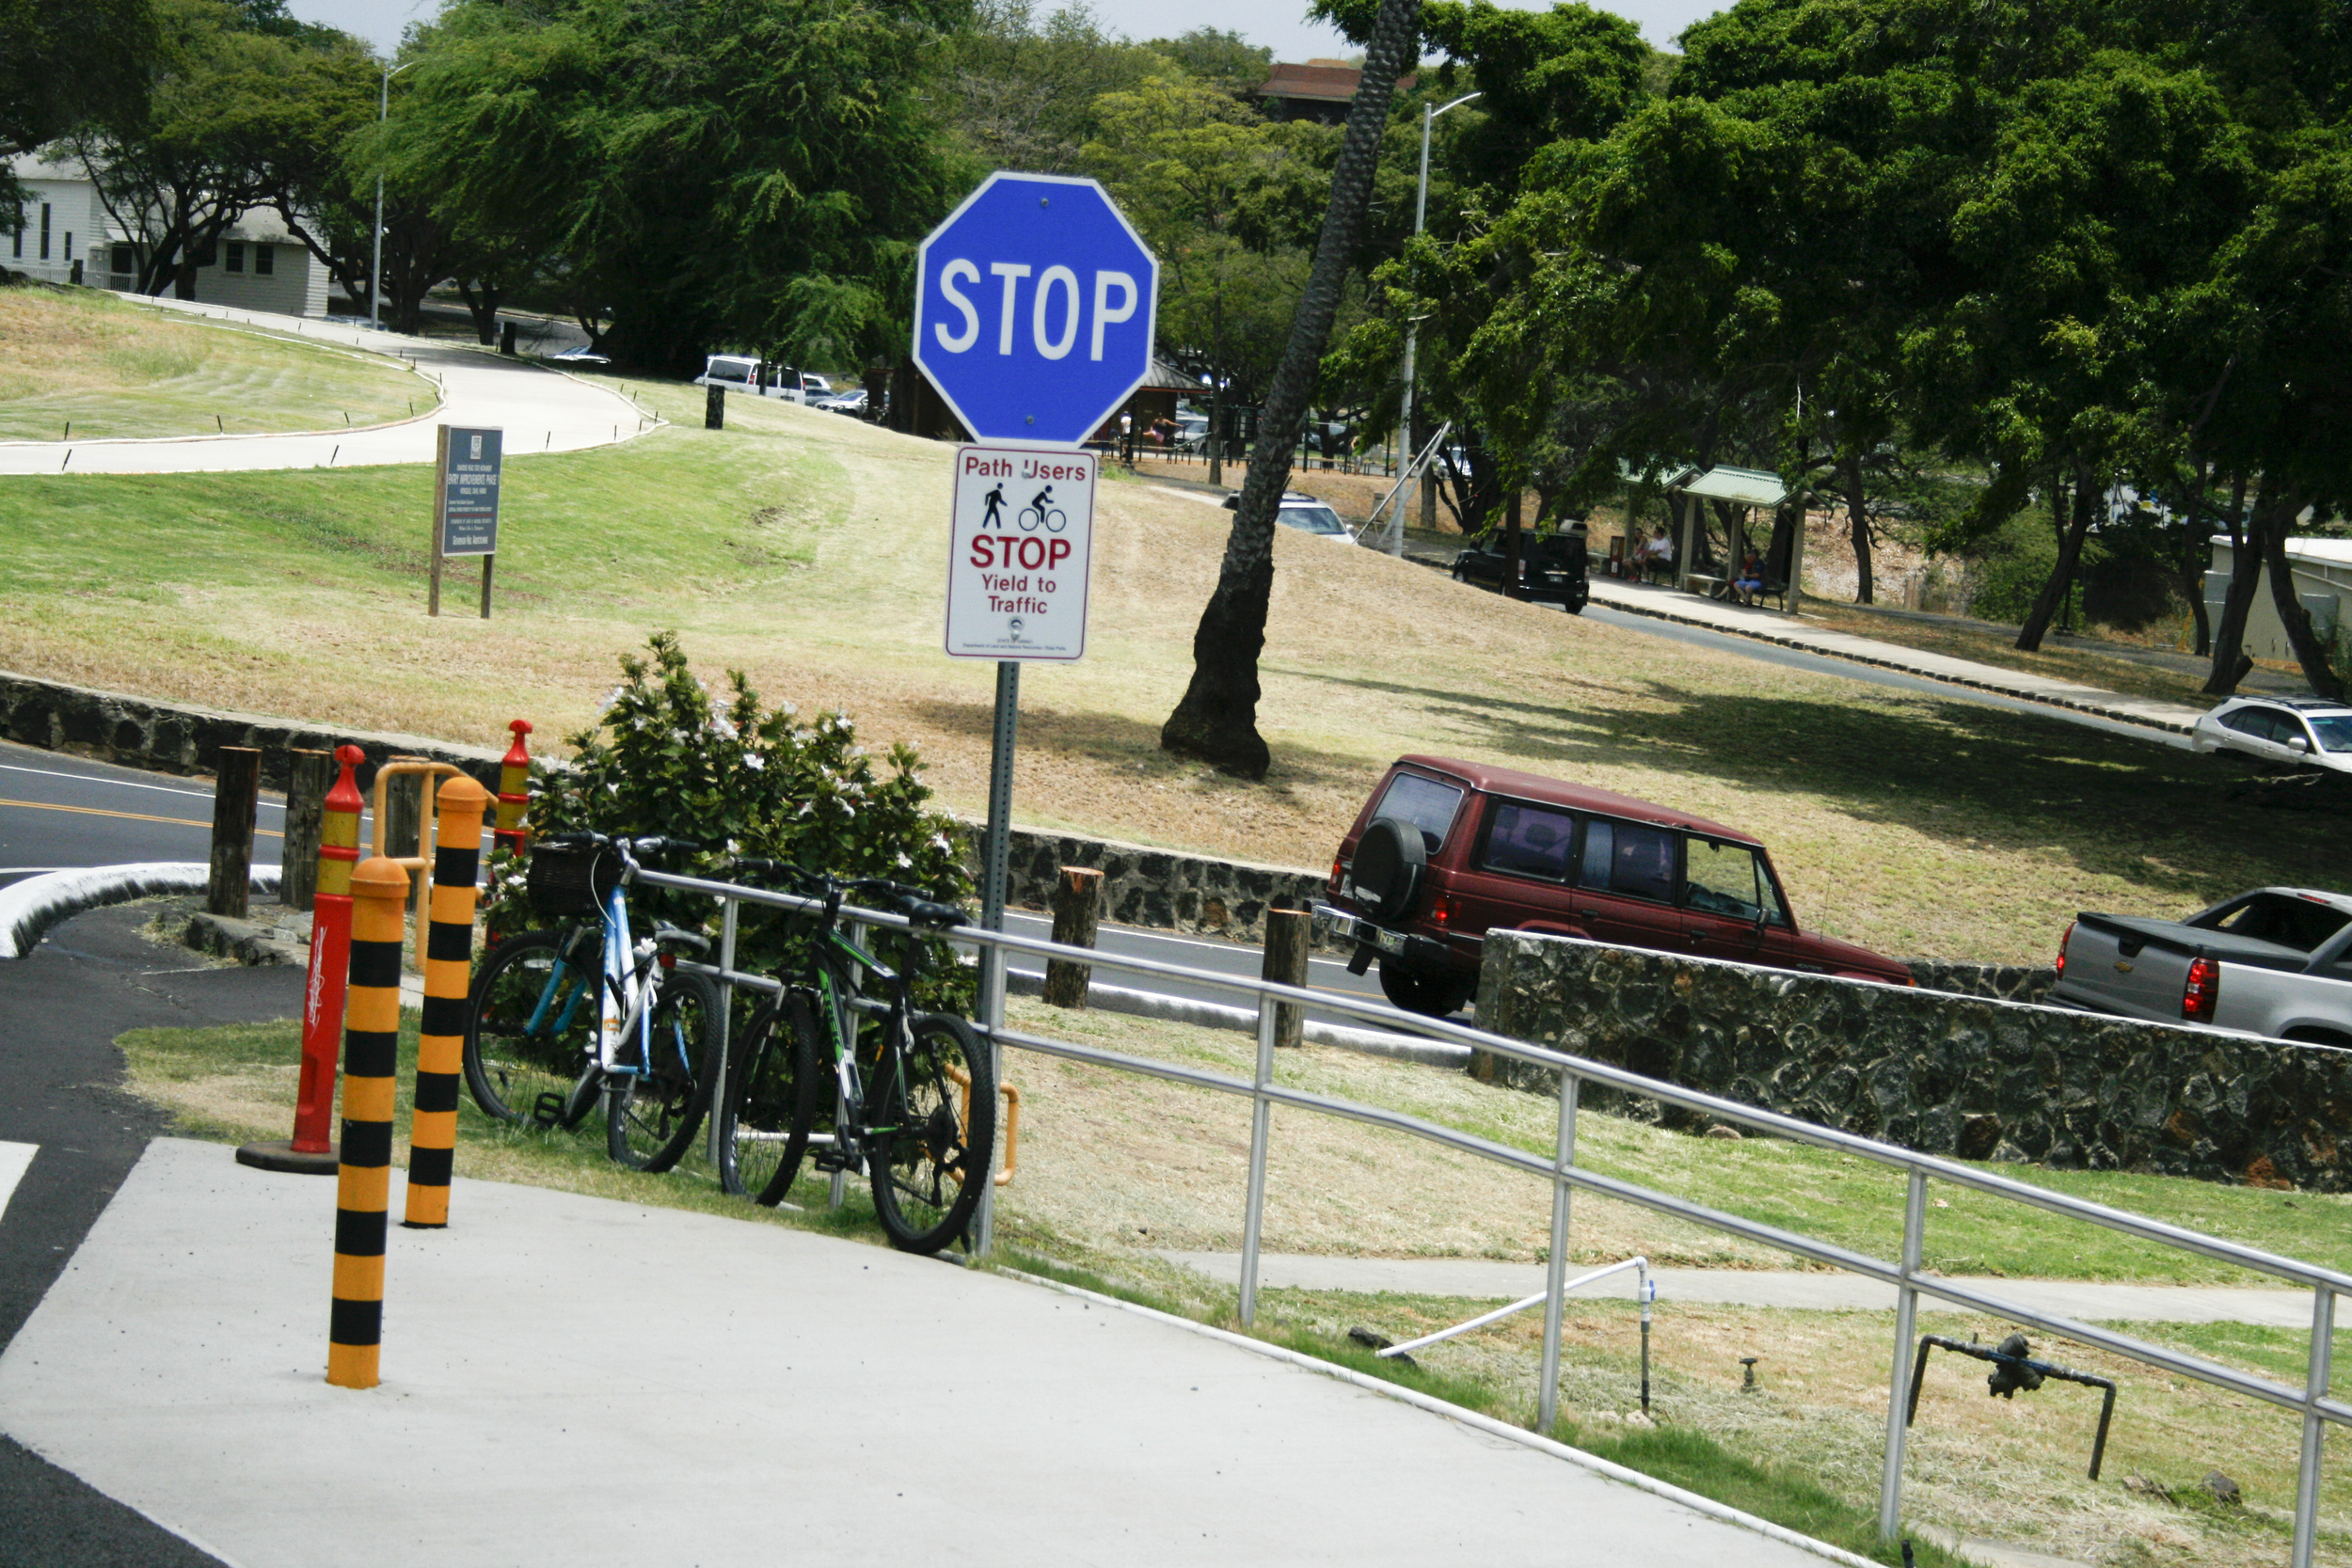 Go home stop sign, you're drunk. Standard Hawaiian stop signs are red but on some private properties they're blue!?